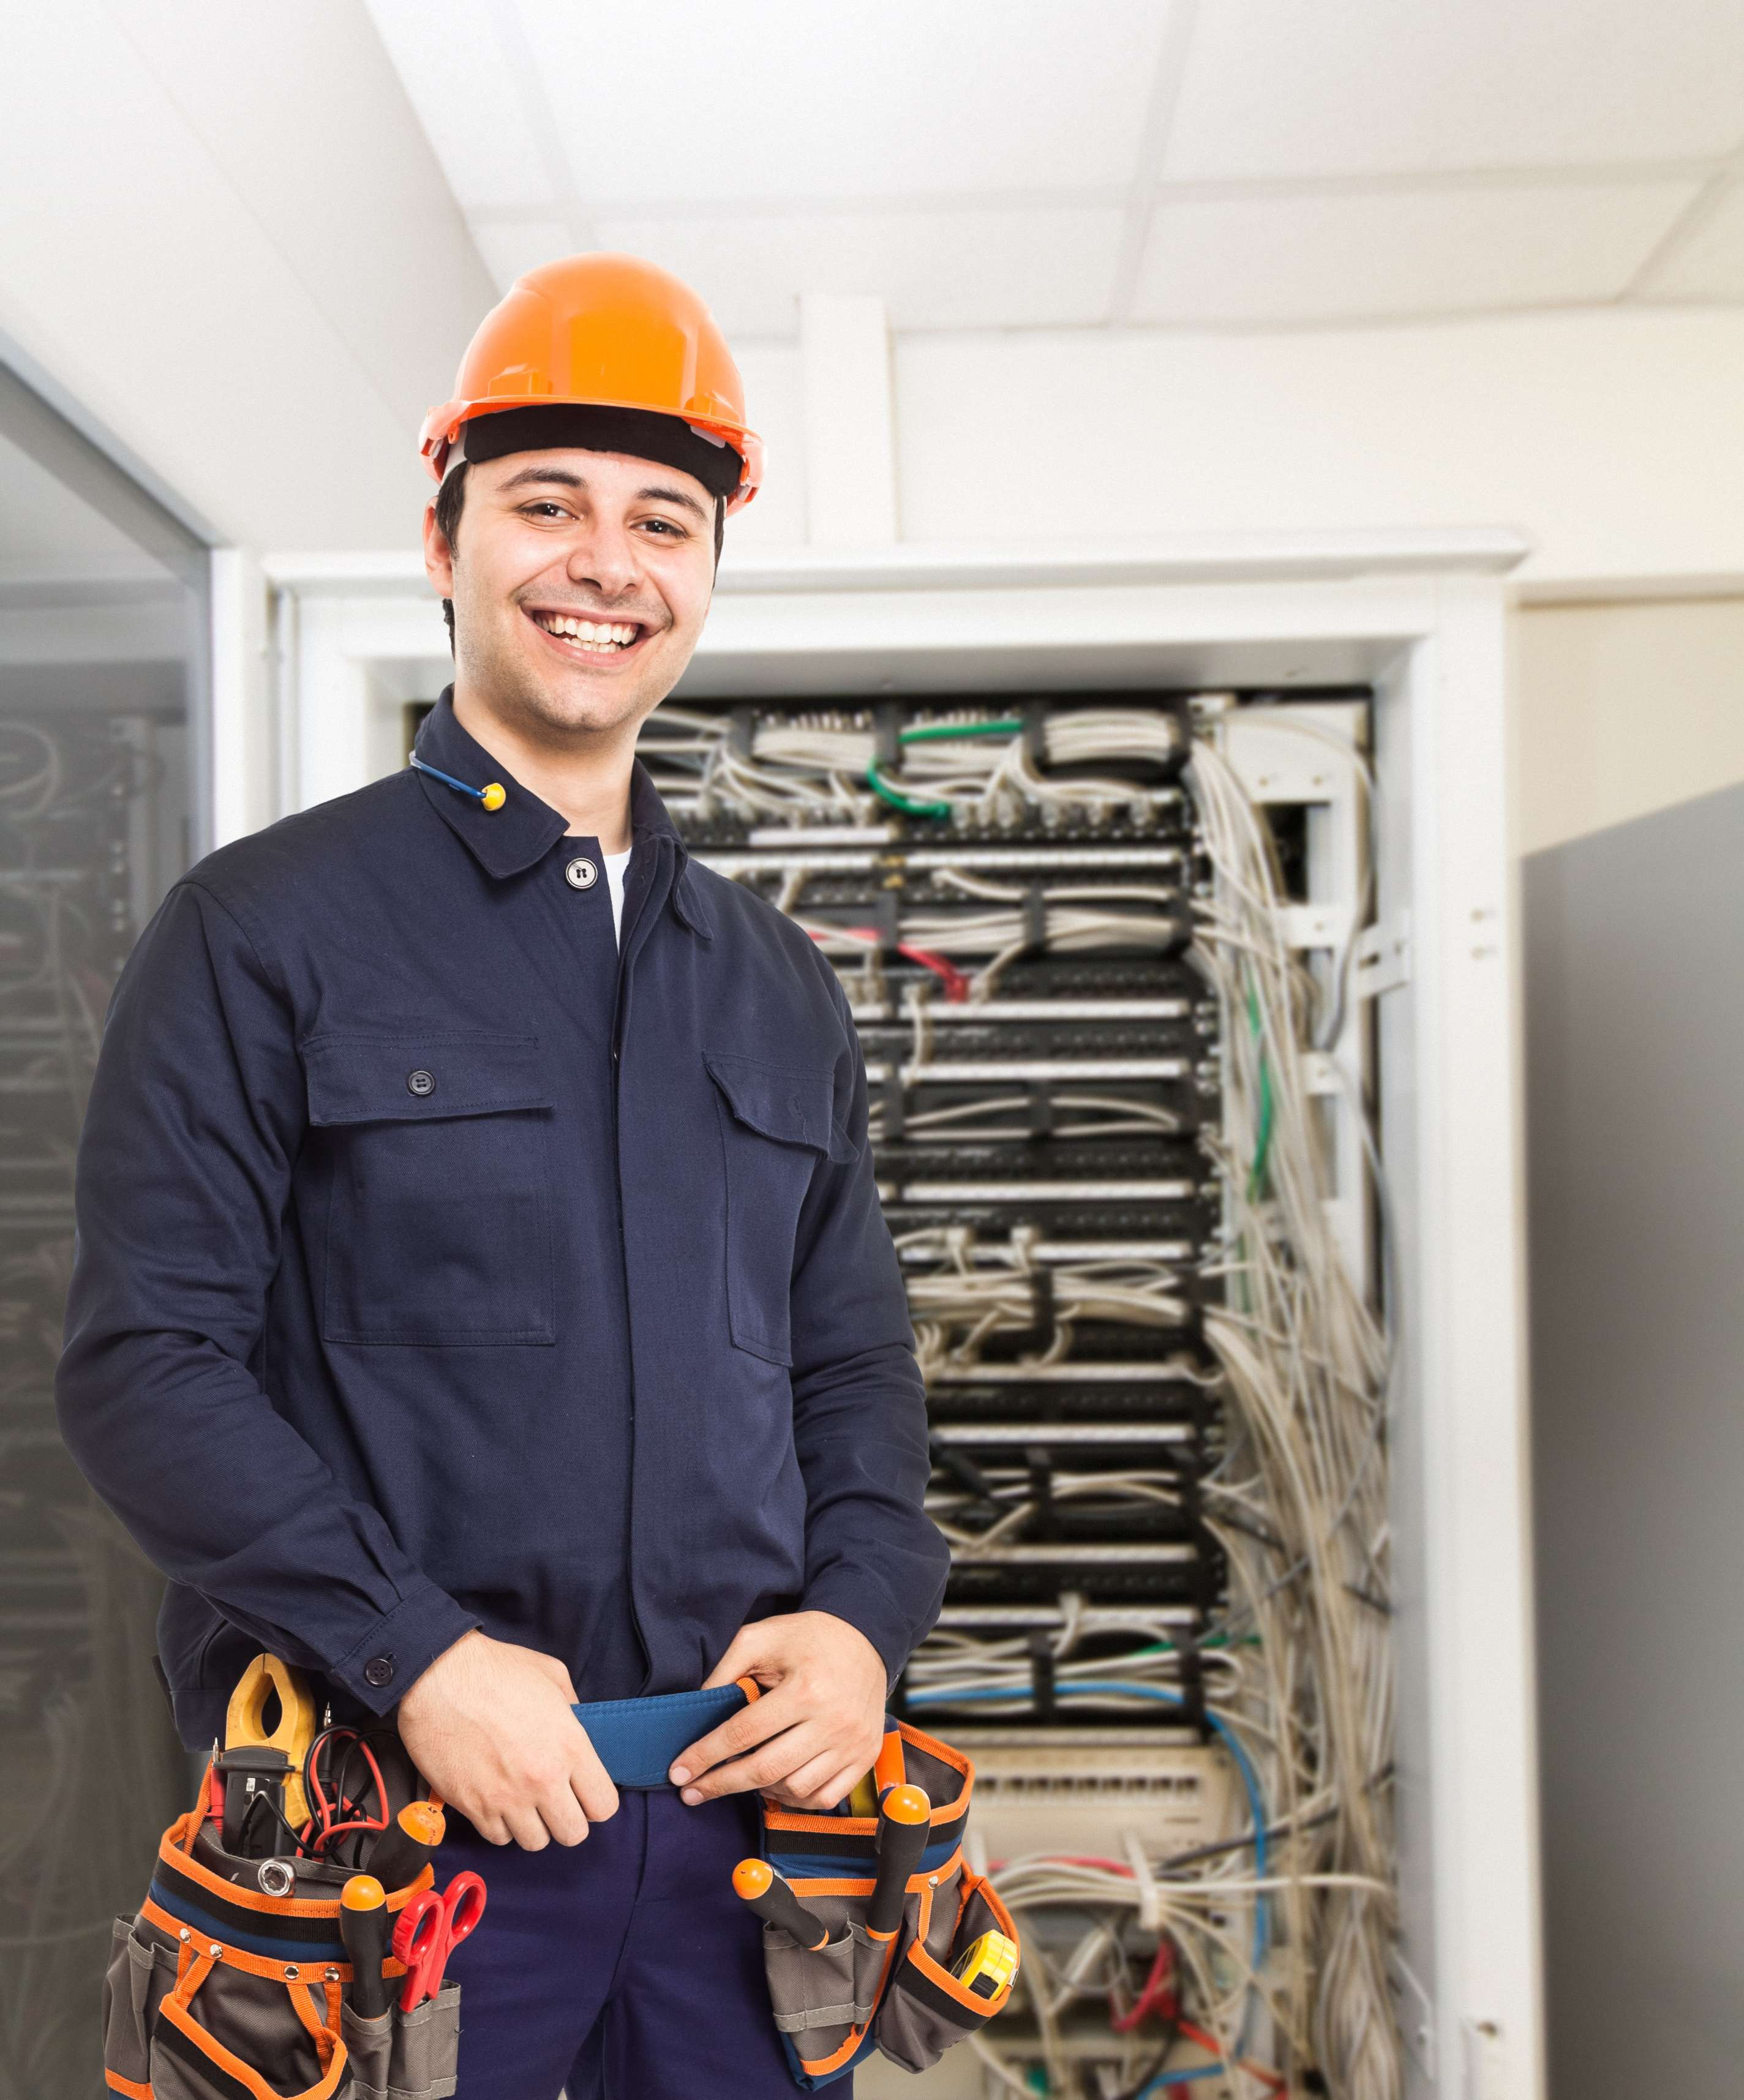 Varied Structured Cabling Services in Illinois & Wisconsin